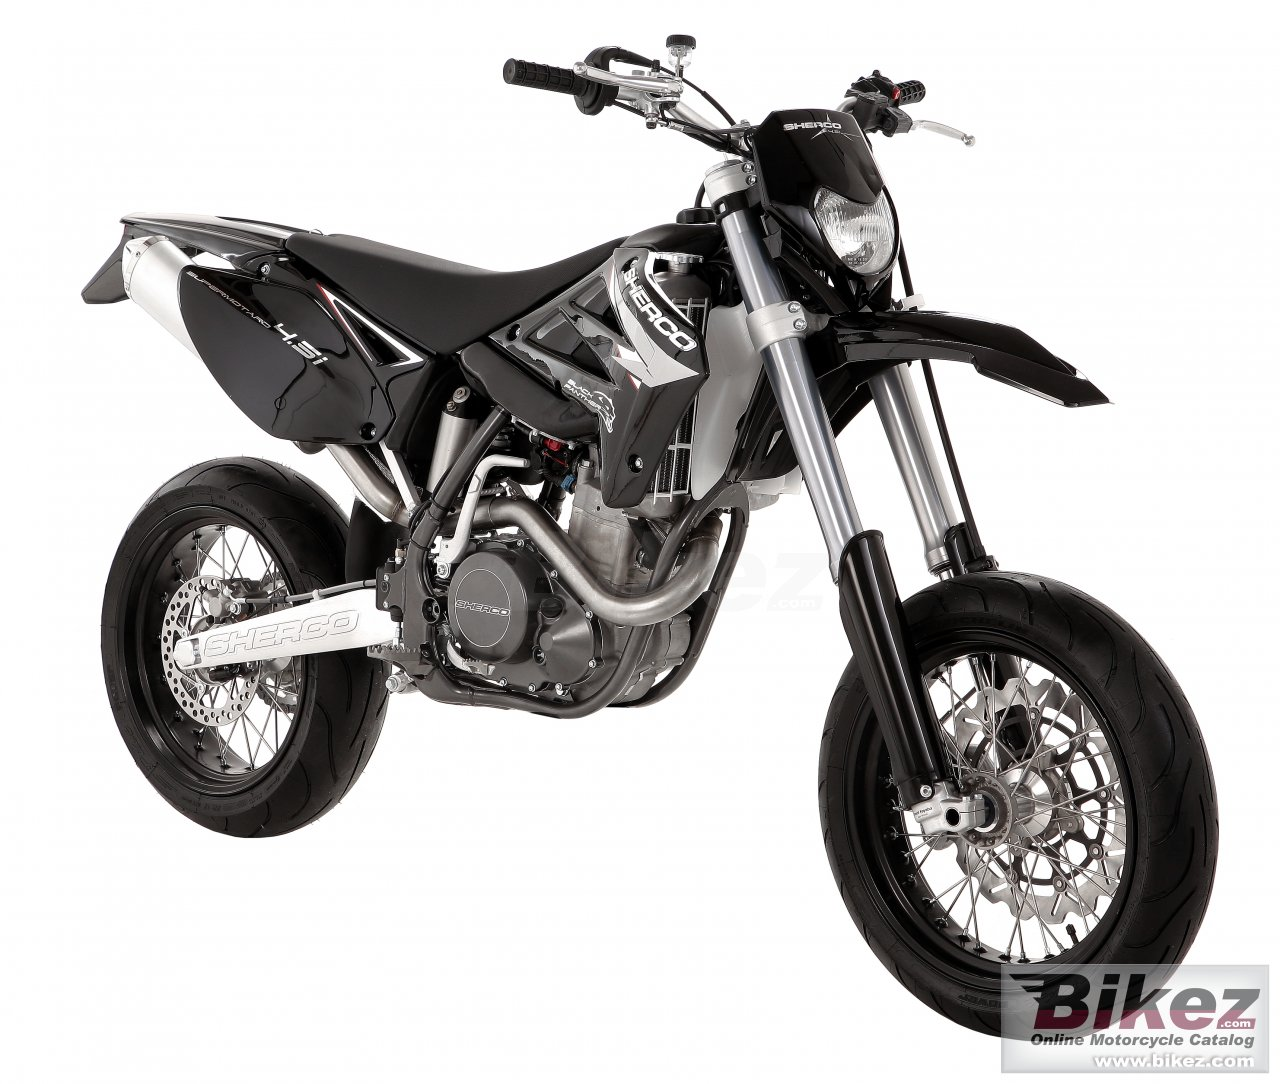 Big Sherco 4.5i 4t supermotard picture and wallpaper from Bikez.com